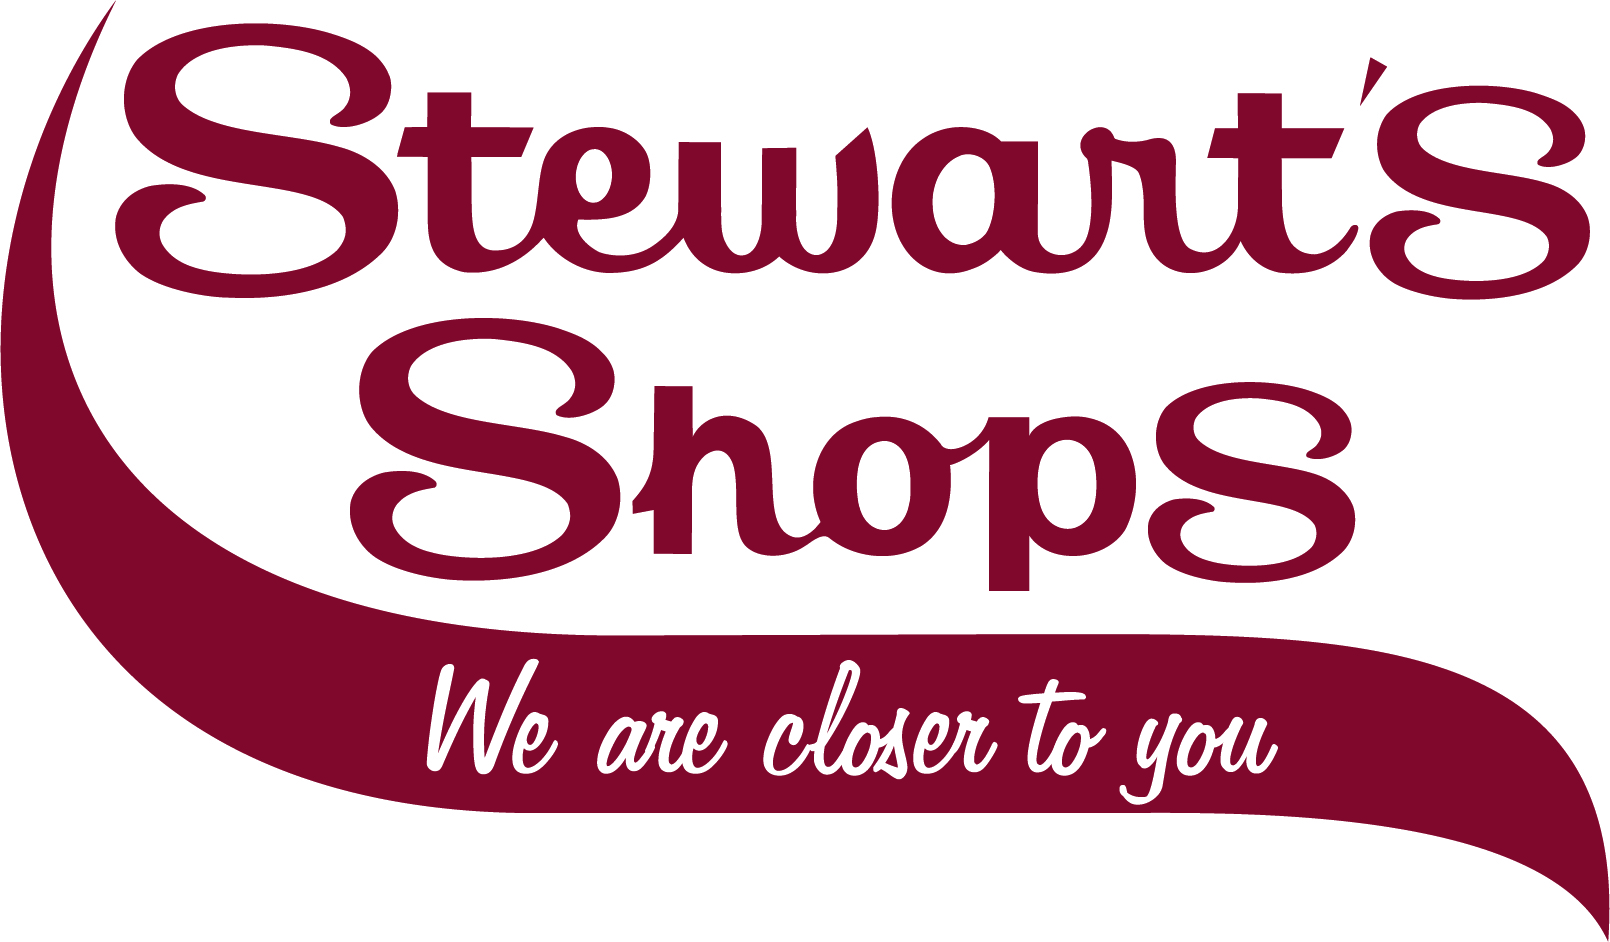 stewarts-shops-red-logo.jpg